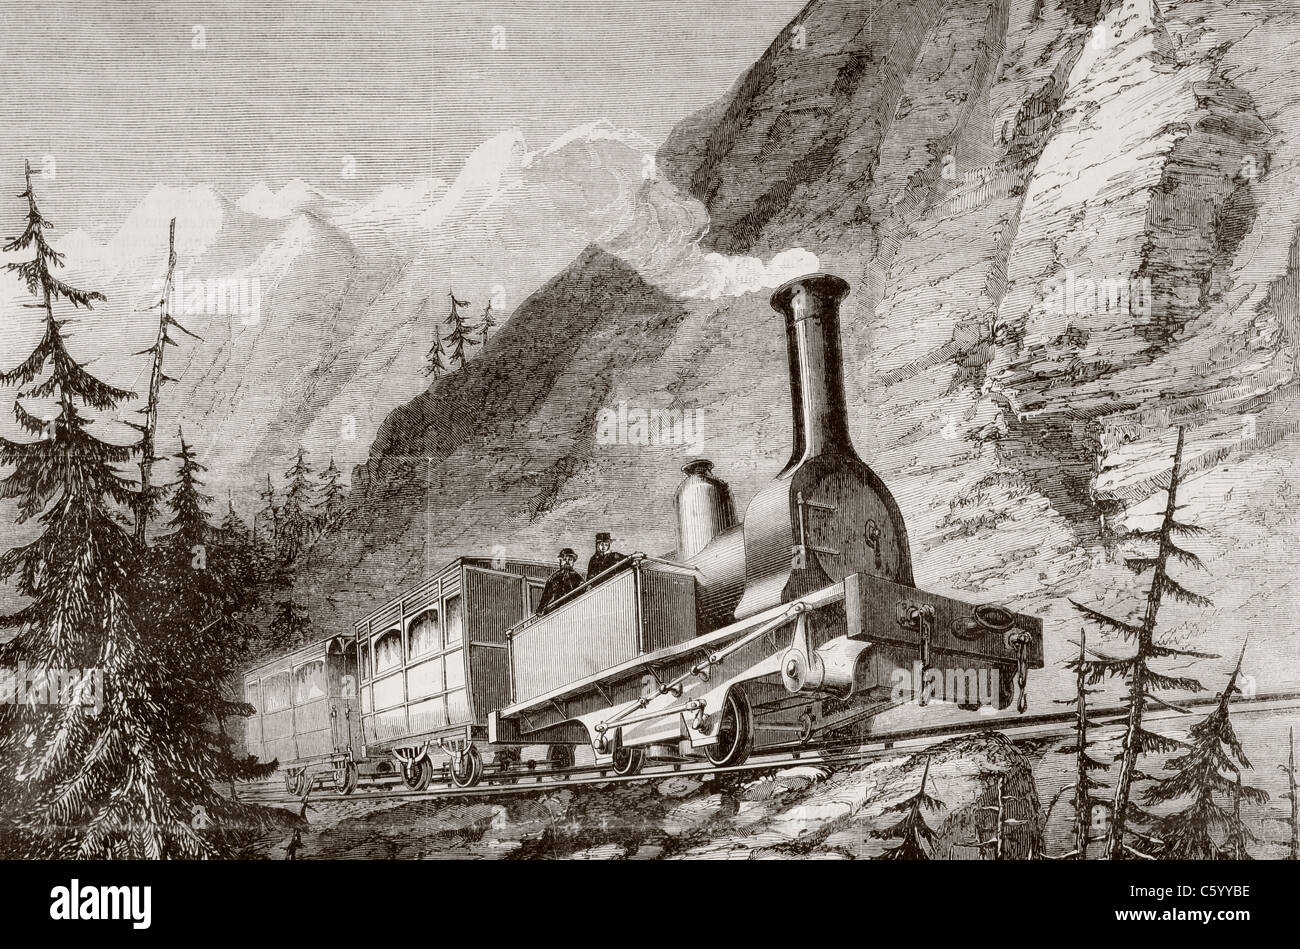 Steam train used on the Mont-Cenis, France, railroad during the 1860's. - Stock Image